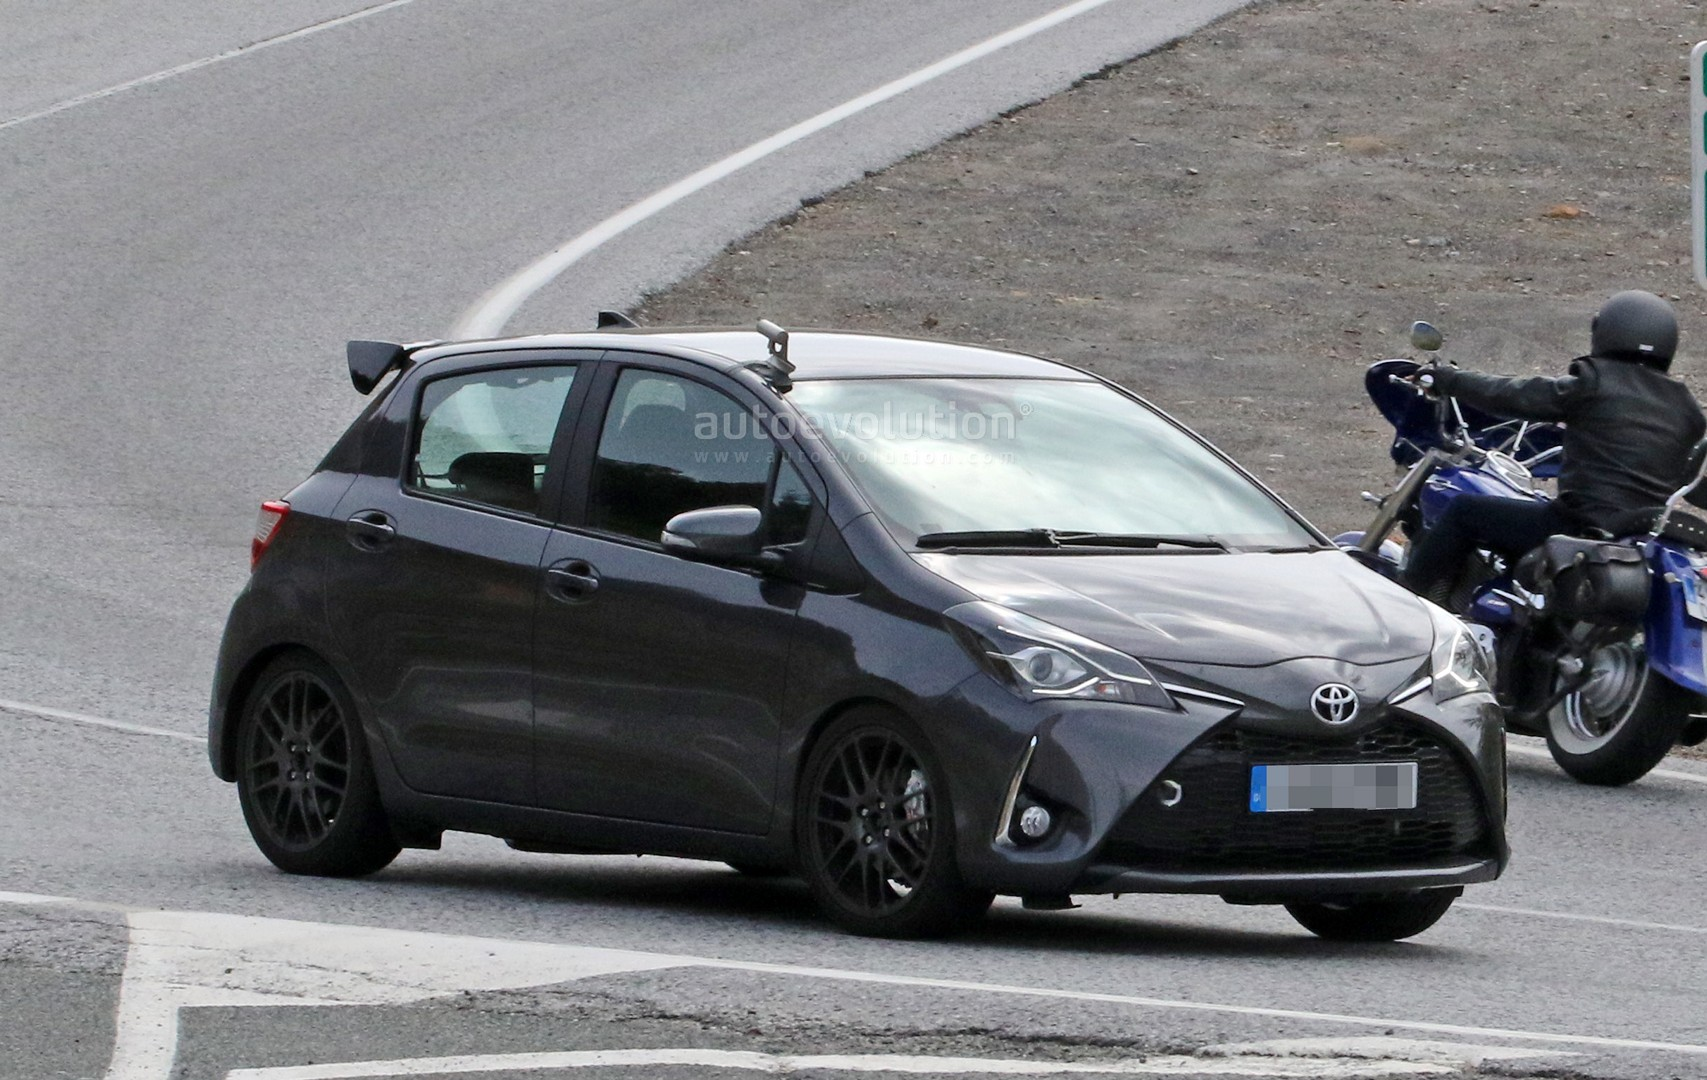 Toyota Yaris Grmn >> Toyota Yaris Grmn Spied For The First Time With 5 Door Body